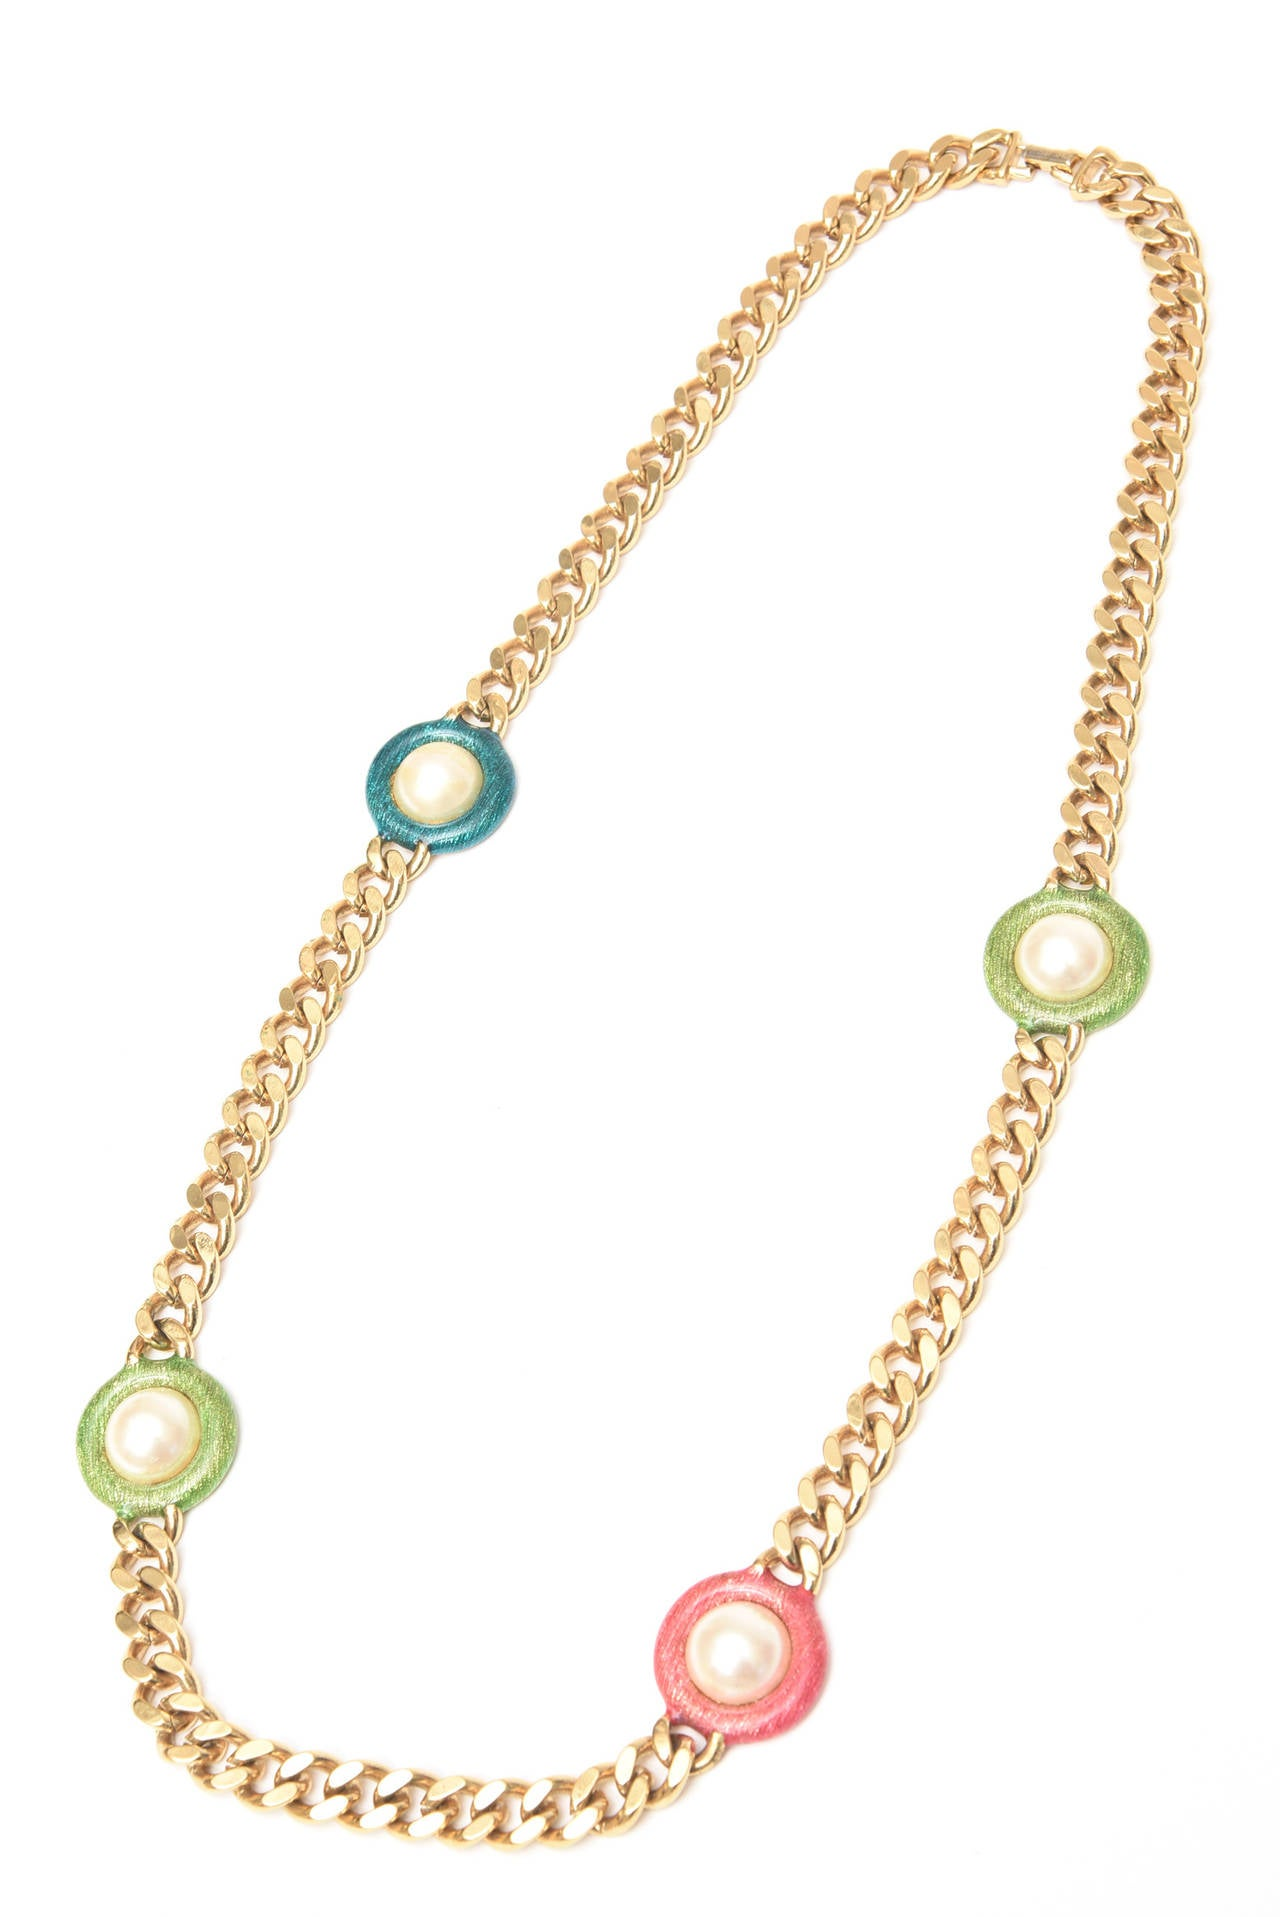 Modern Guy Laroche Gold,Tone Chain Link Strand Necklace with Enamel and Faux Pearl SALE For Sale